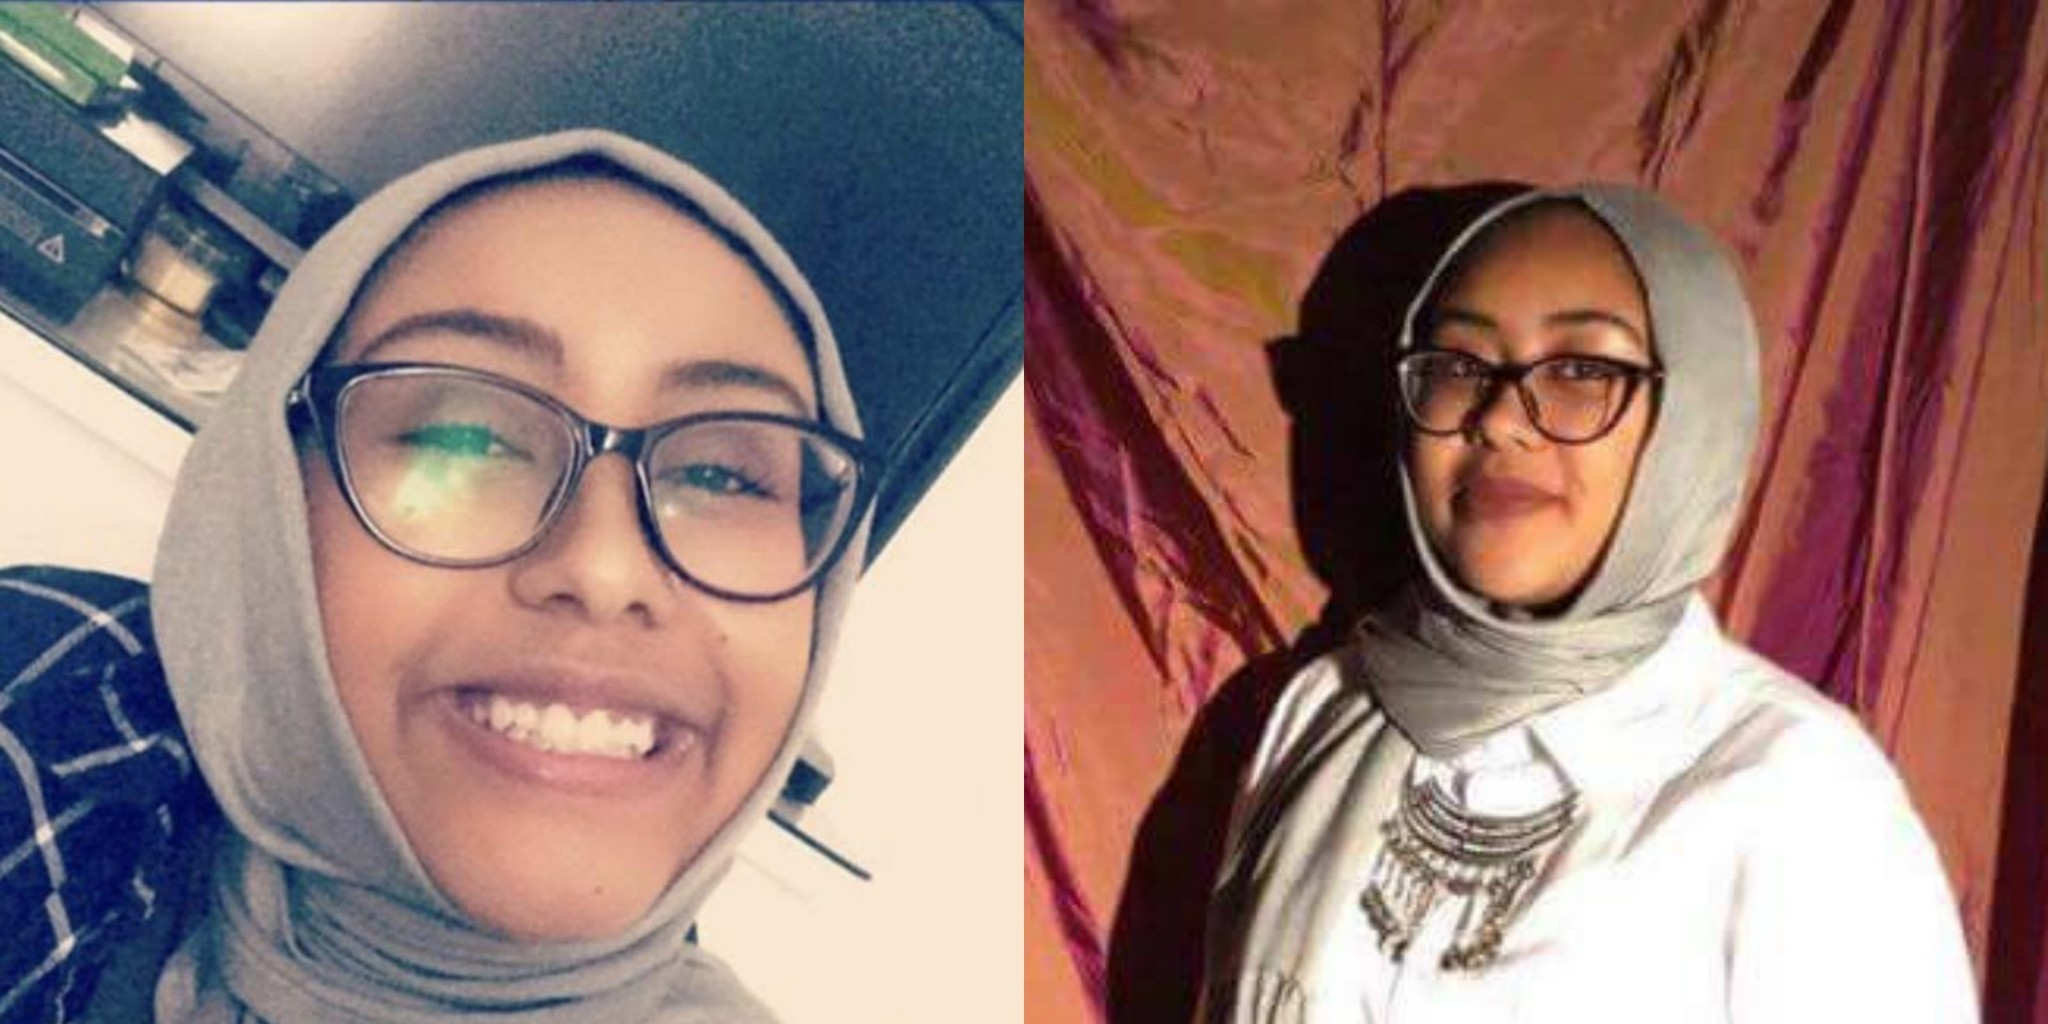 Photos of 17-year-old Nabra Hassanen obtained from social media.